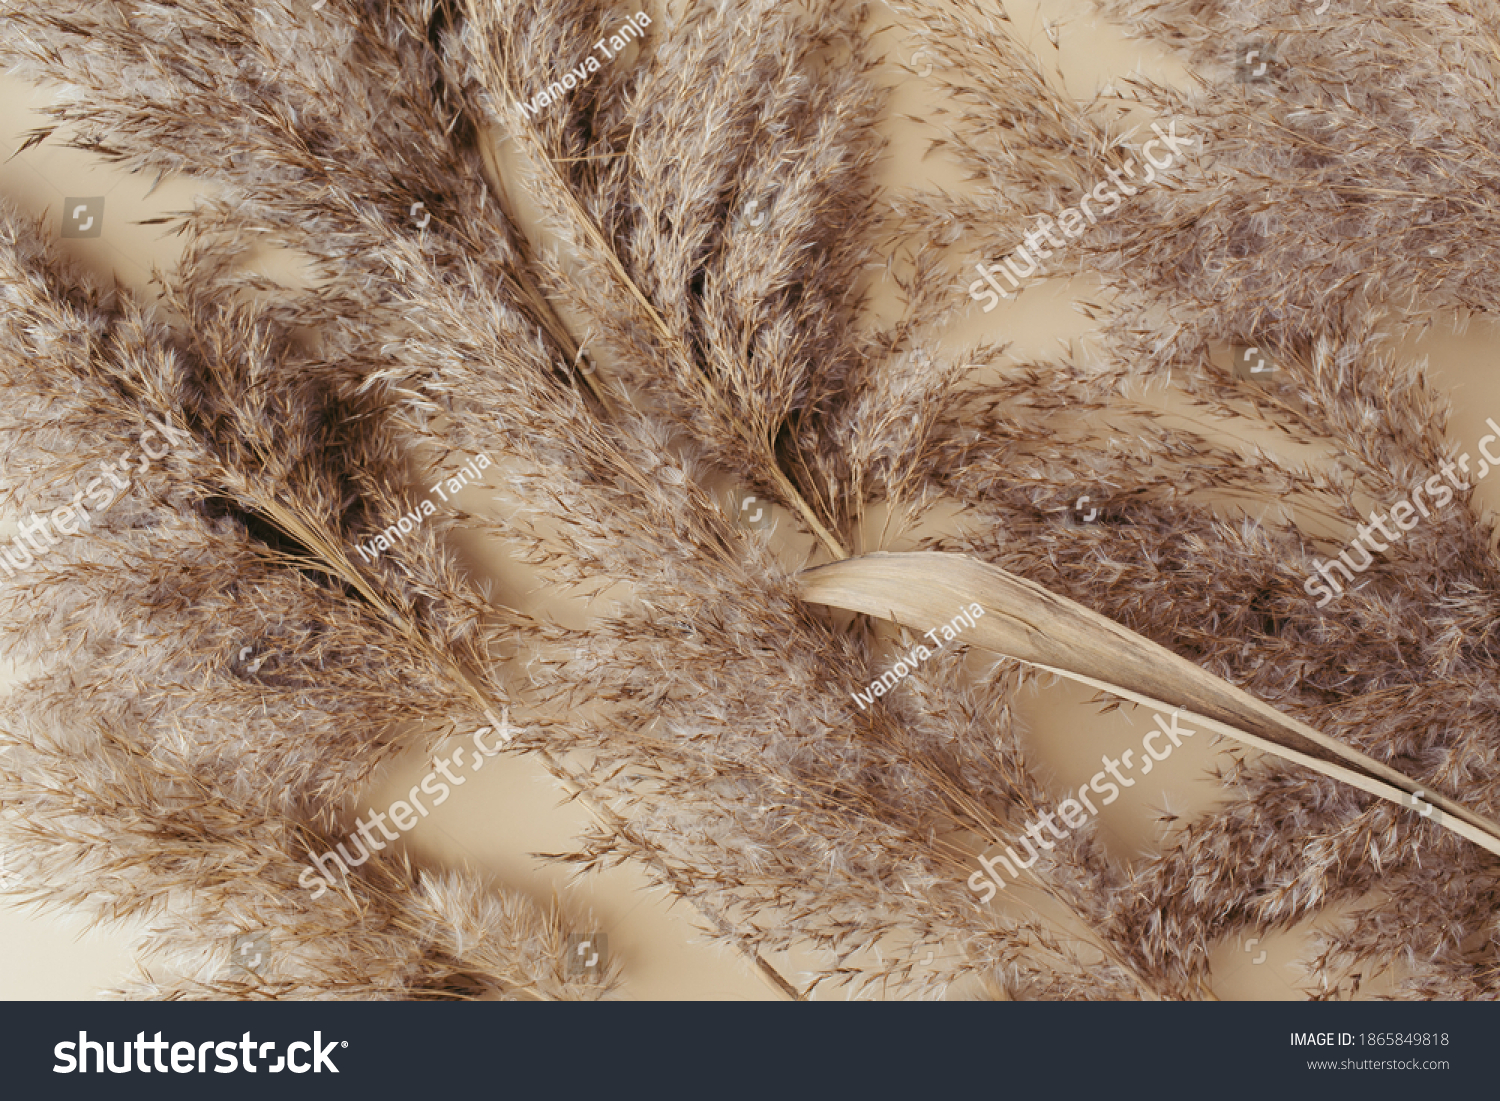 Dry pampas grass reeds agains on beige background. Beautiful pattern with neutral colors. Minimal, stylish, monochrome concept. Flat lay, top view, copy space. Set sail champagne trend color 2021 #1865849818